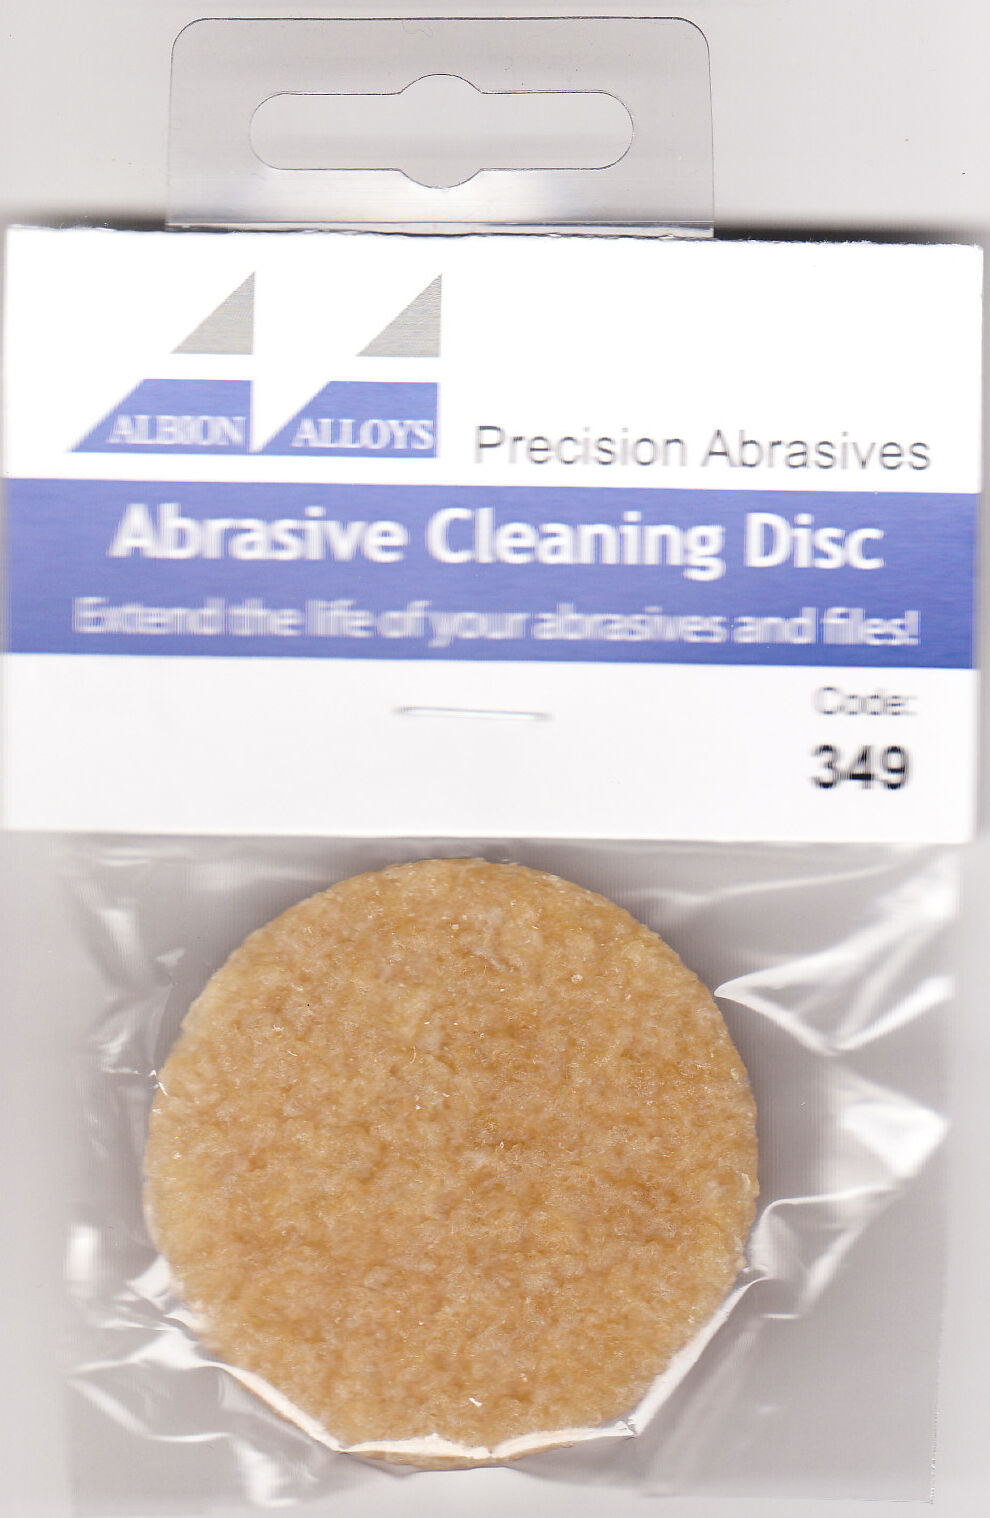 Albion Alloys 349 Abrasive Cleaning Disc - Cleans Sanding Tools - New Pack